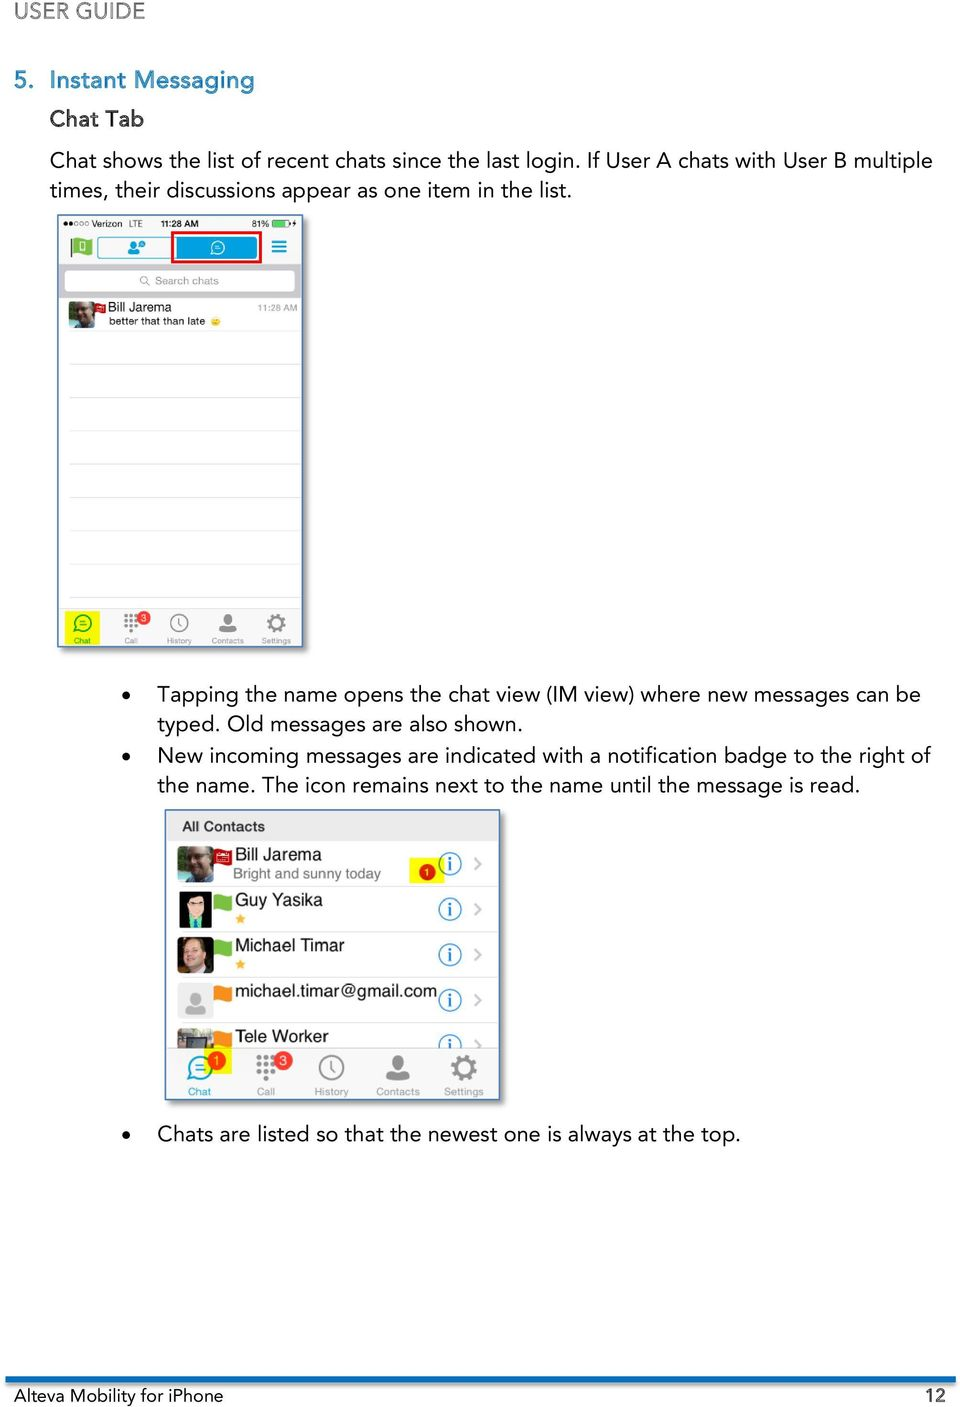 Tapping the name opens the chat view (IM view) where new messages can be typed. Old messages are also shown.